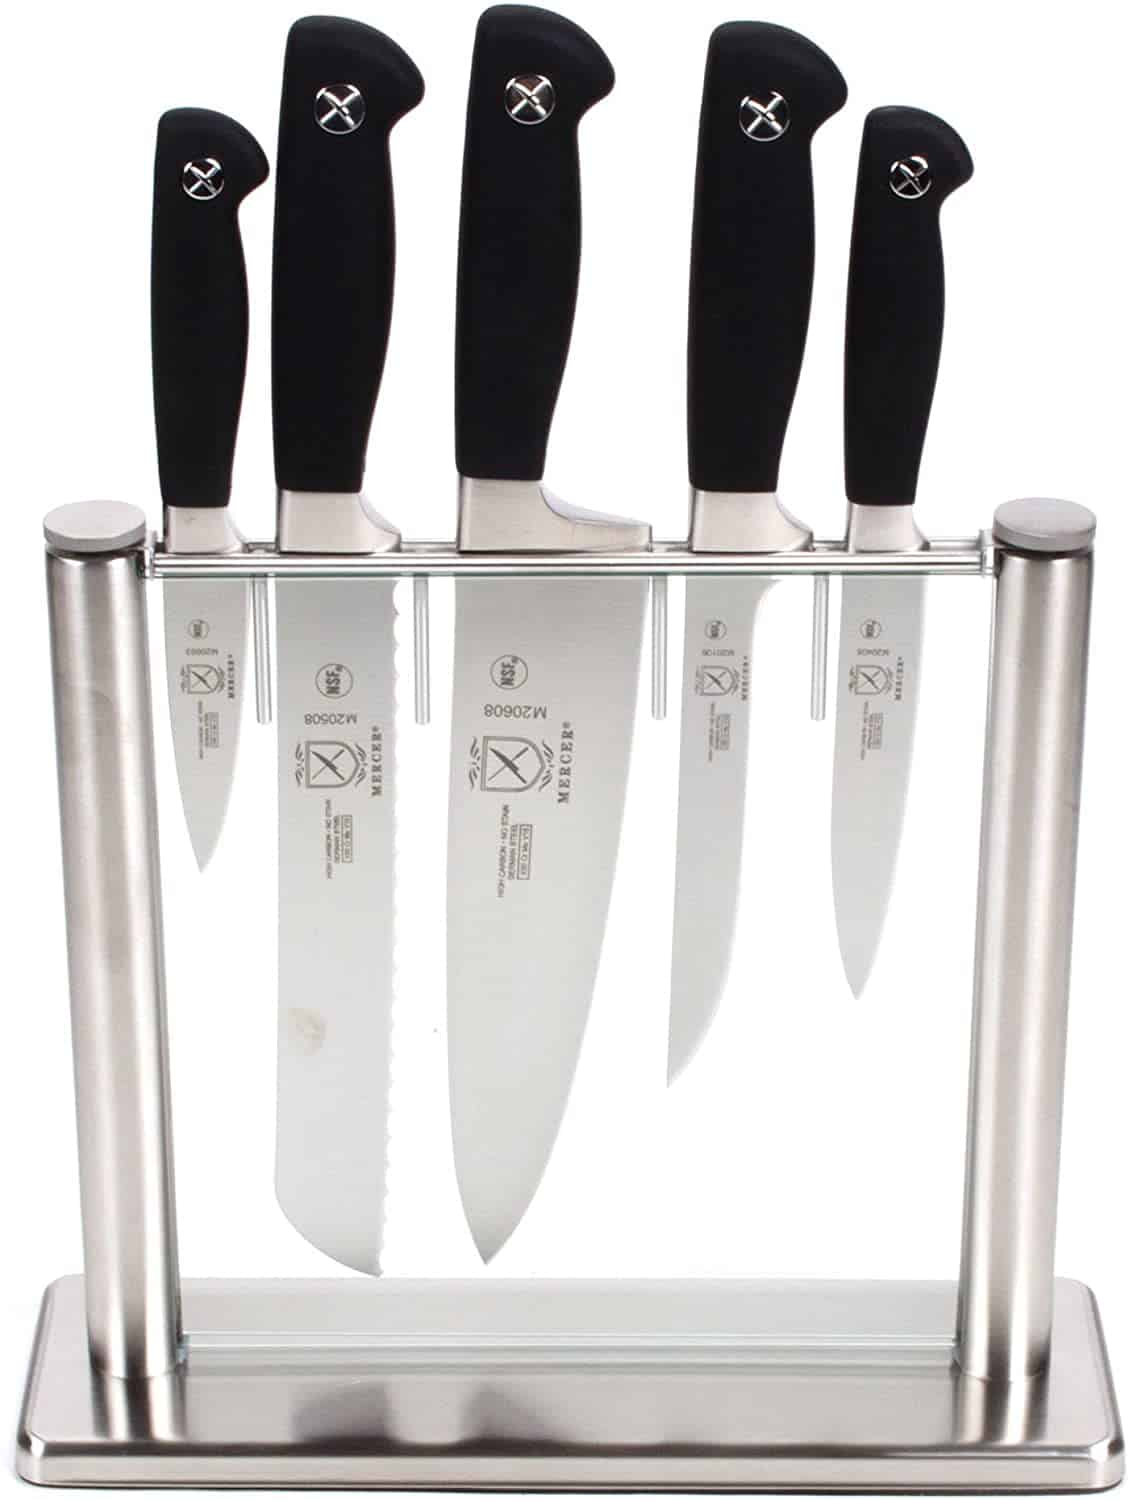 Mercer Cullinary Genesis Kitchen Knives